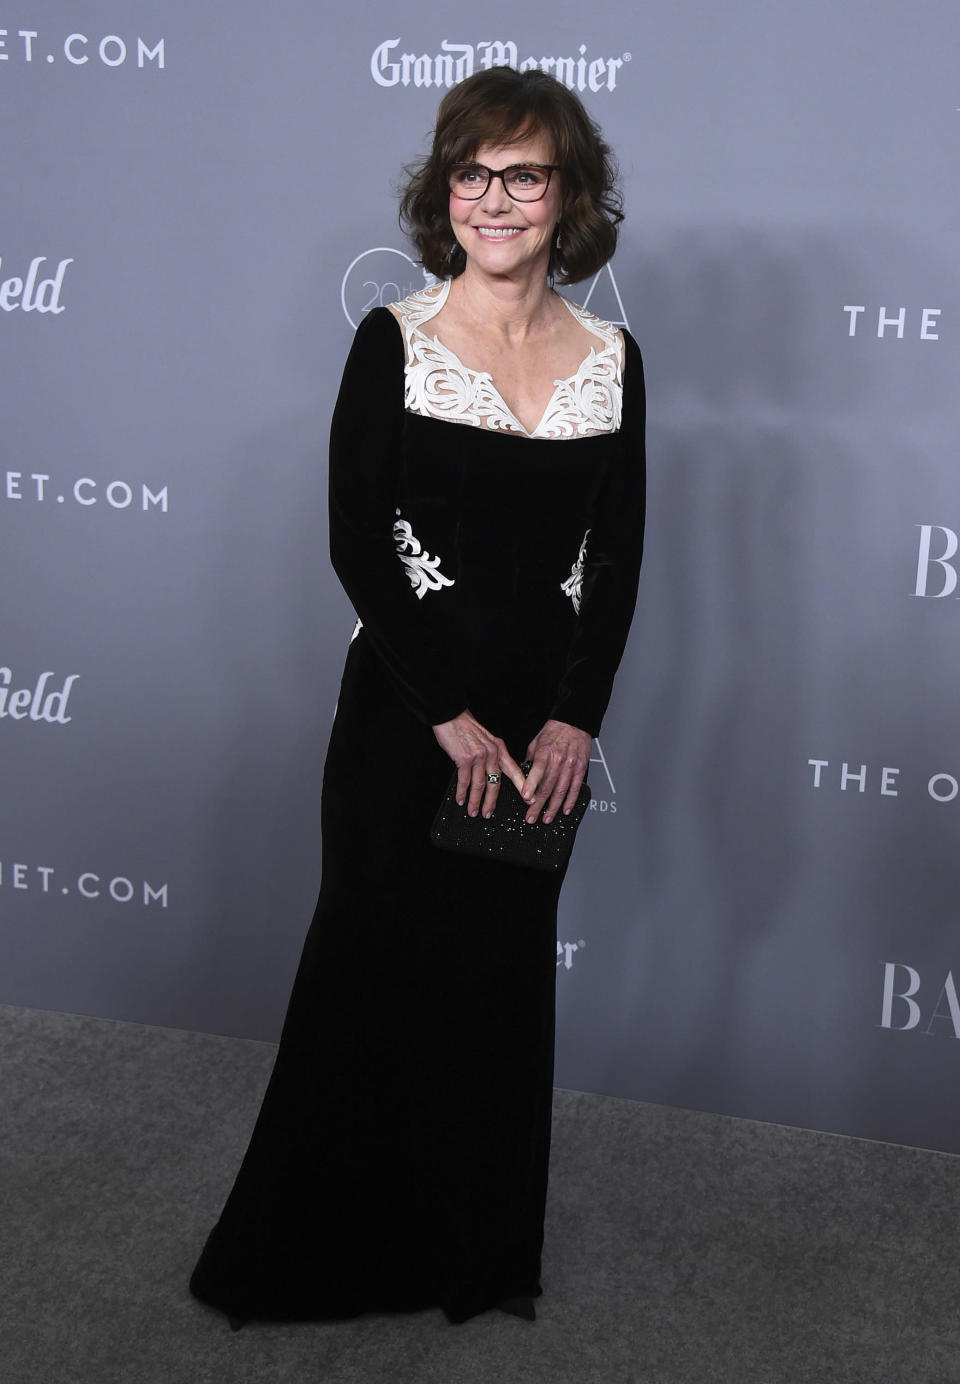 FILE - Sally Field arrives at the 20th annual Costume Designers Guild Awards on Feb. 20, 2018, in Beverly Hills, Calif. Field turns 74 on Nov. 6. (Photo by Jordan Strauss/Invision/AP, File)